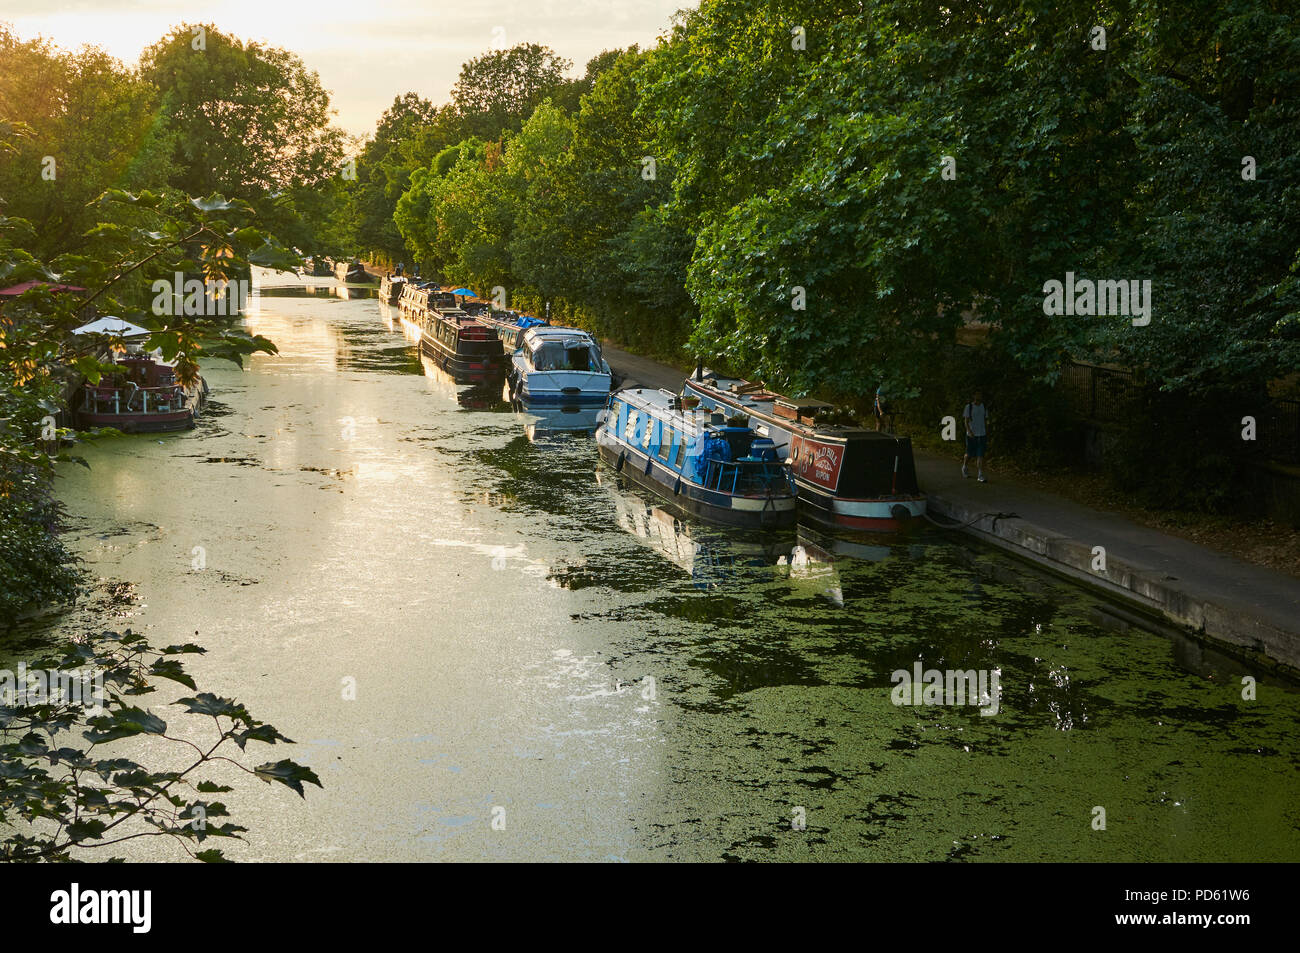 The Regents Canal at Victoria Park, East London UK, in the early evening, during the 2018 heatwave - Stock Image